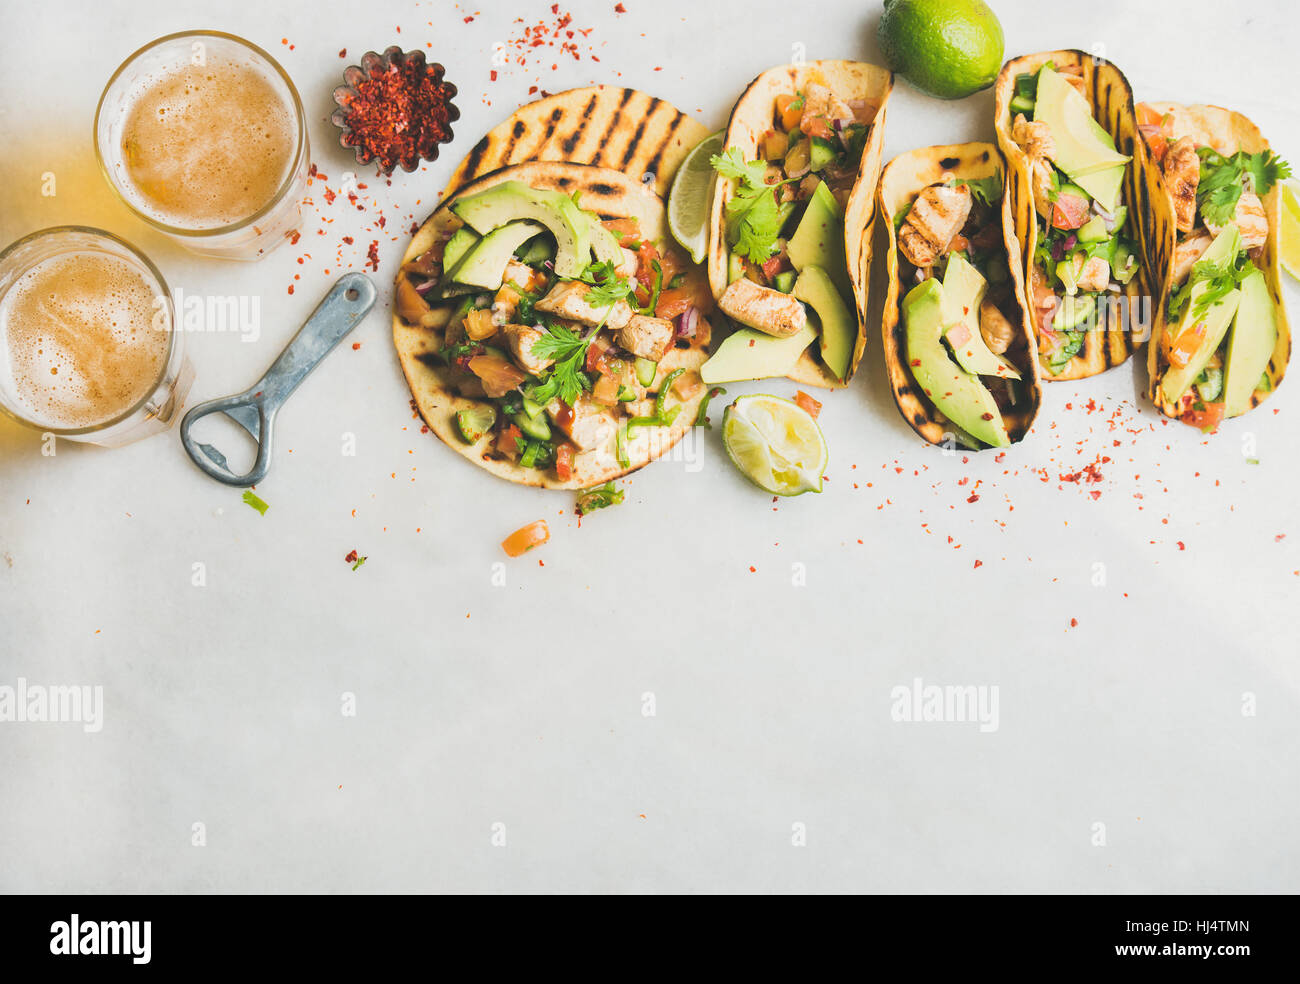 Healthy corn tortillas with grilled chicken, avocado, lime, beer - Stock Image